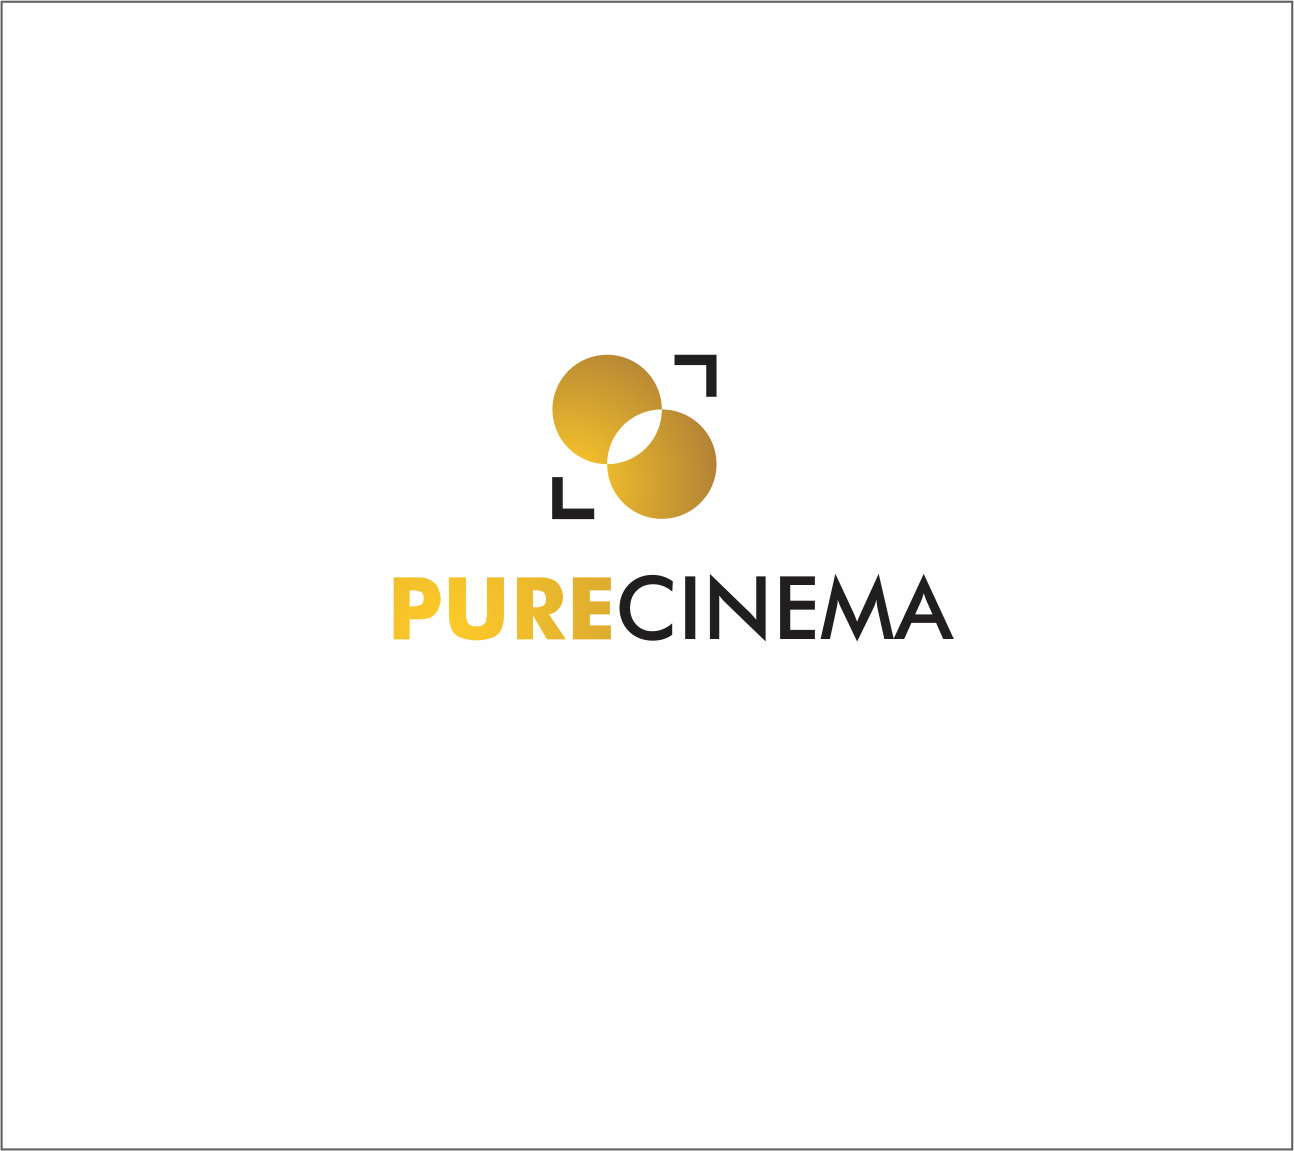 Logo Design by Armada Jamaluddin - Entry No. 58 in the Logo Design Contest Imaginative Logo Design for Pure Cinema.